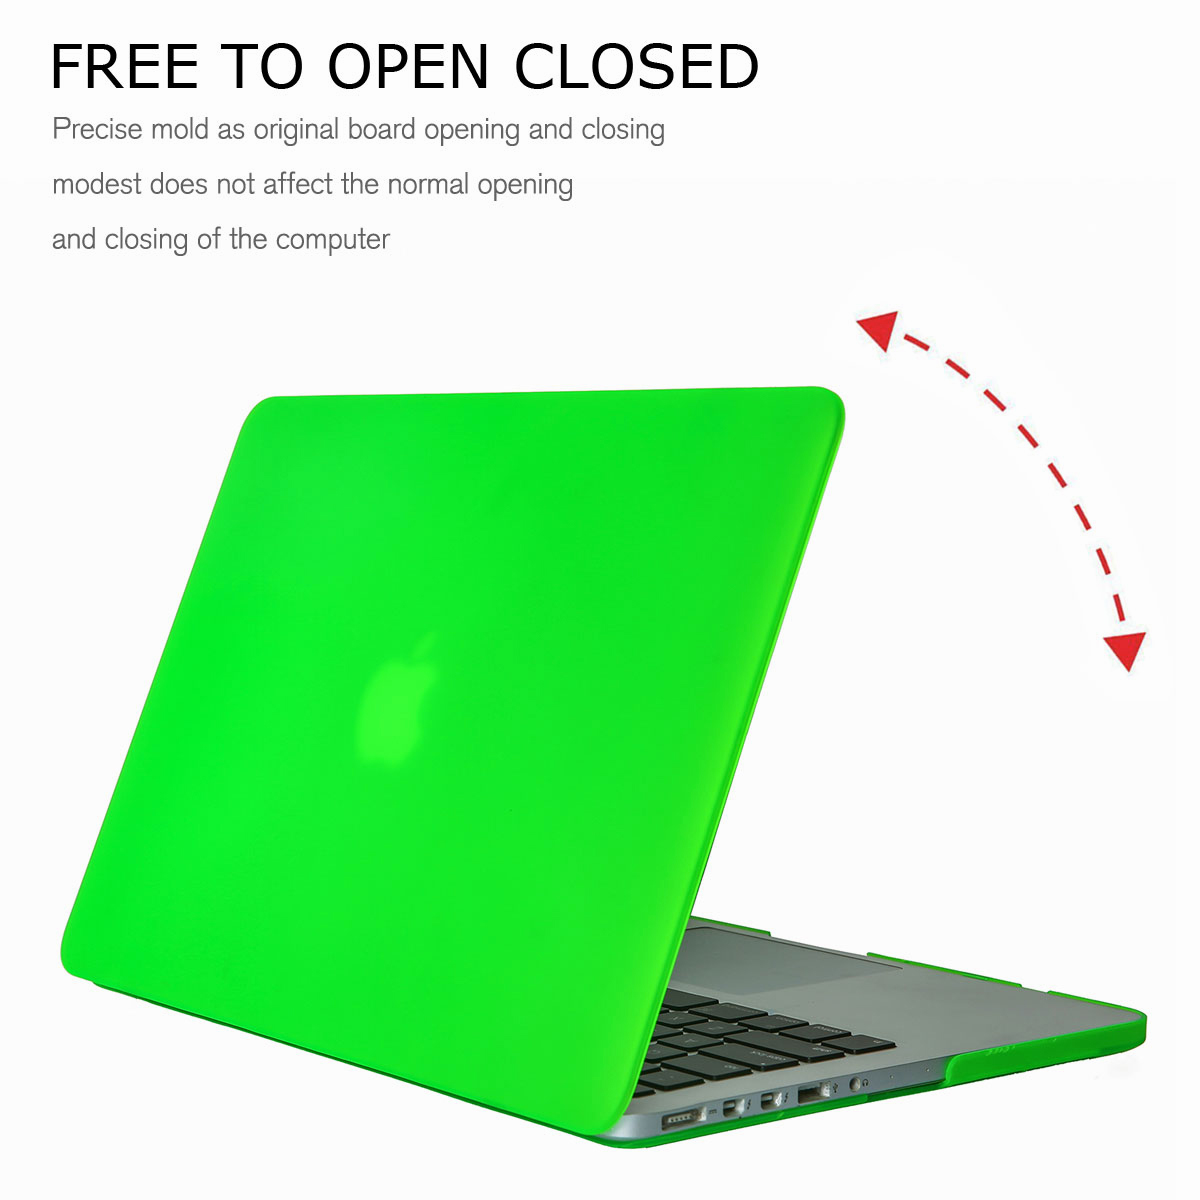 Matte-Rubberized-Hard-Case-Cover-Shell-For-Macbook-Pro-Retina-12-039-039-13-039-039-15-Inch thumbnail 20